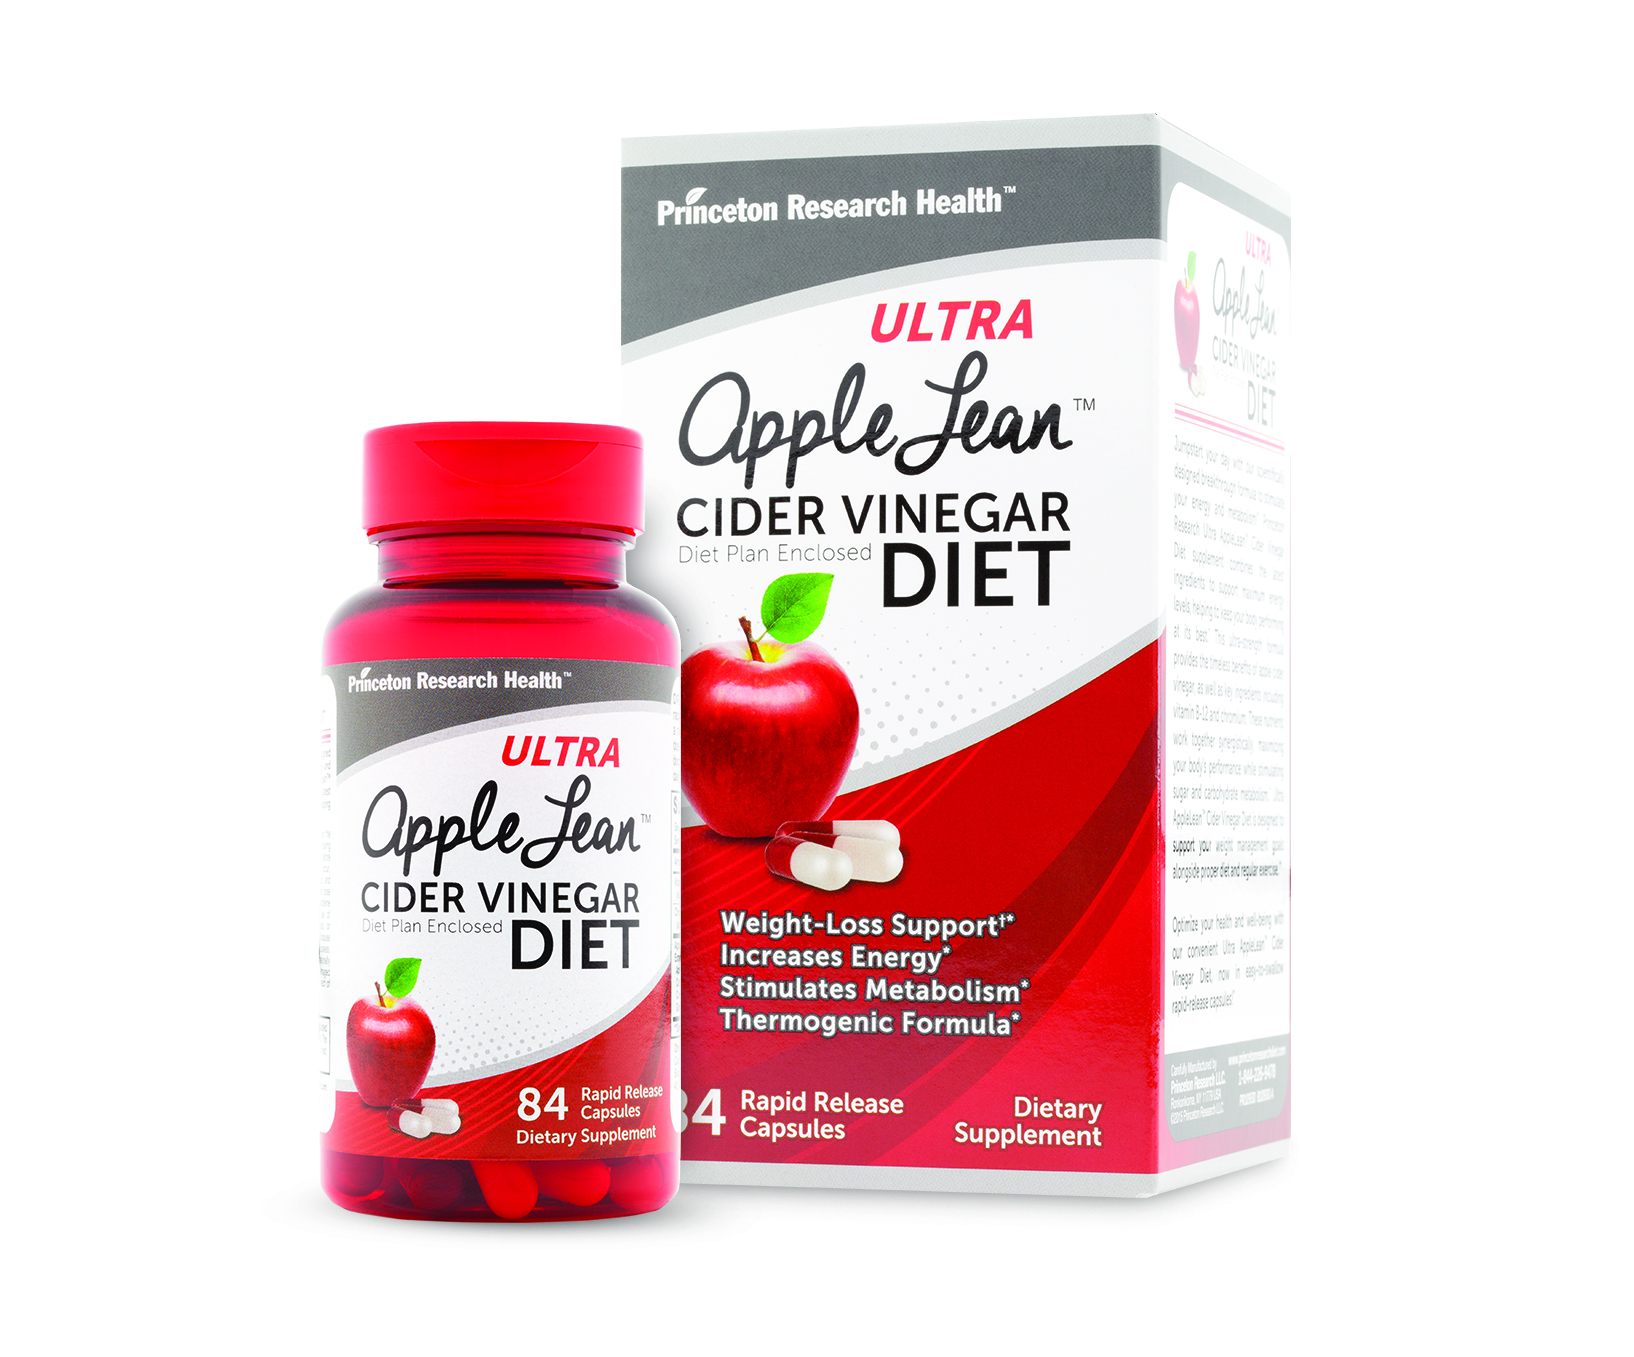 Ultra AppleLean™ Cider Vinegar diet supplements, now in easy-to-swallow rapid-release capsules by Piping Rock Health Products